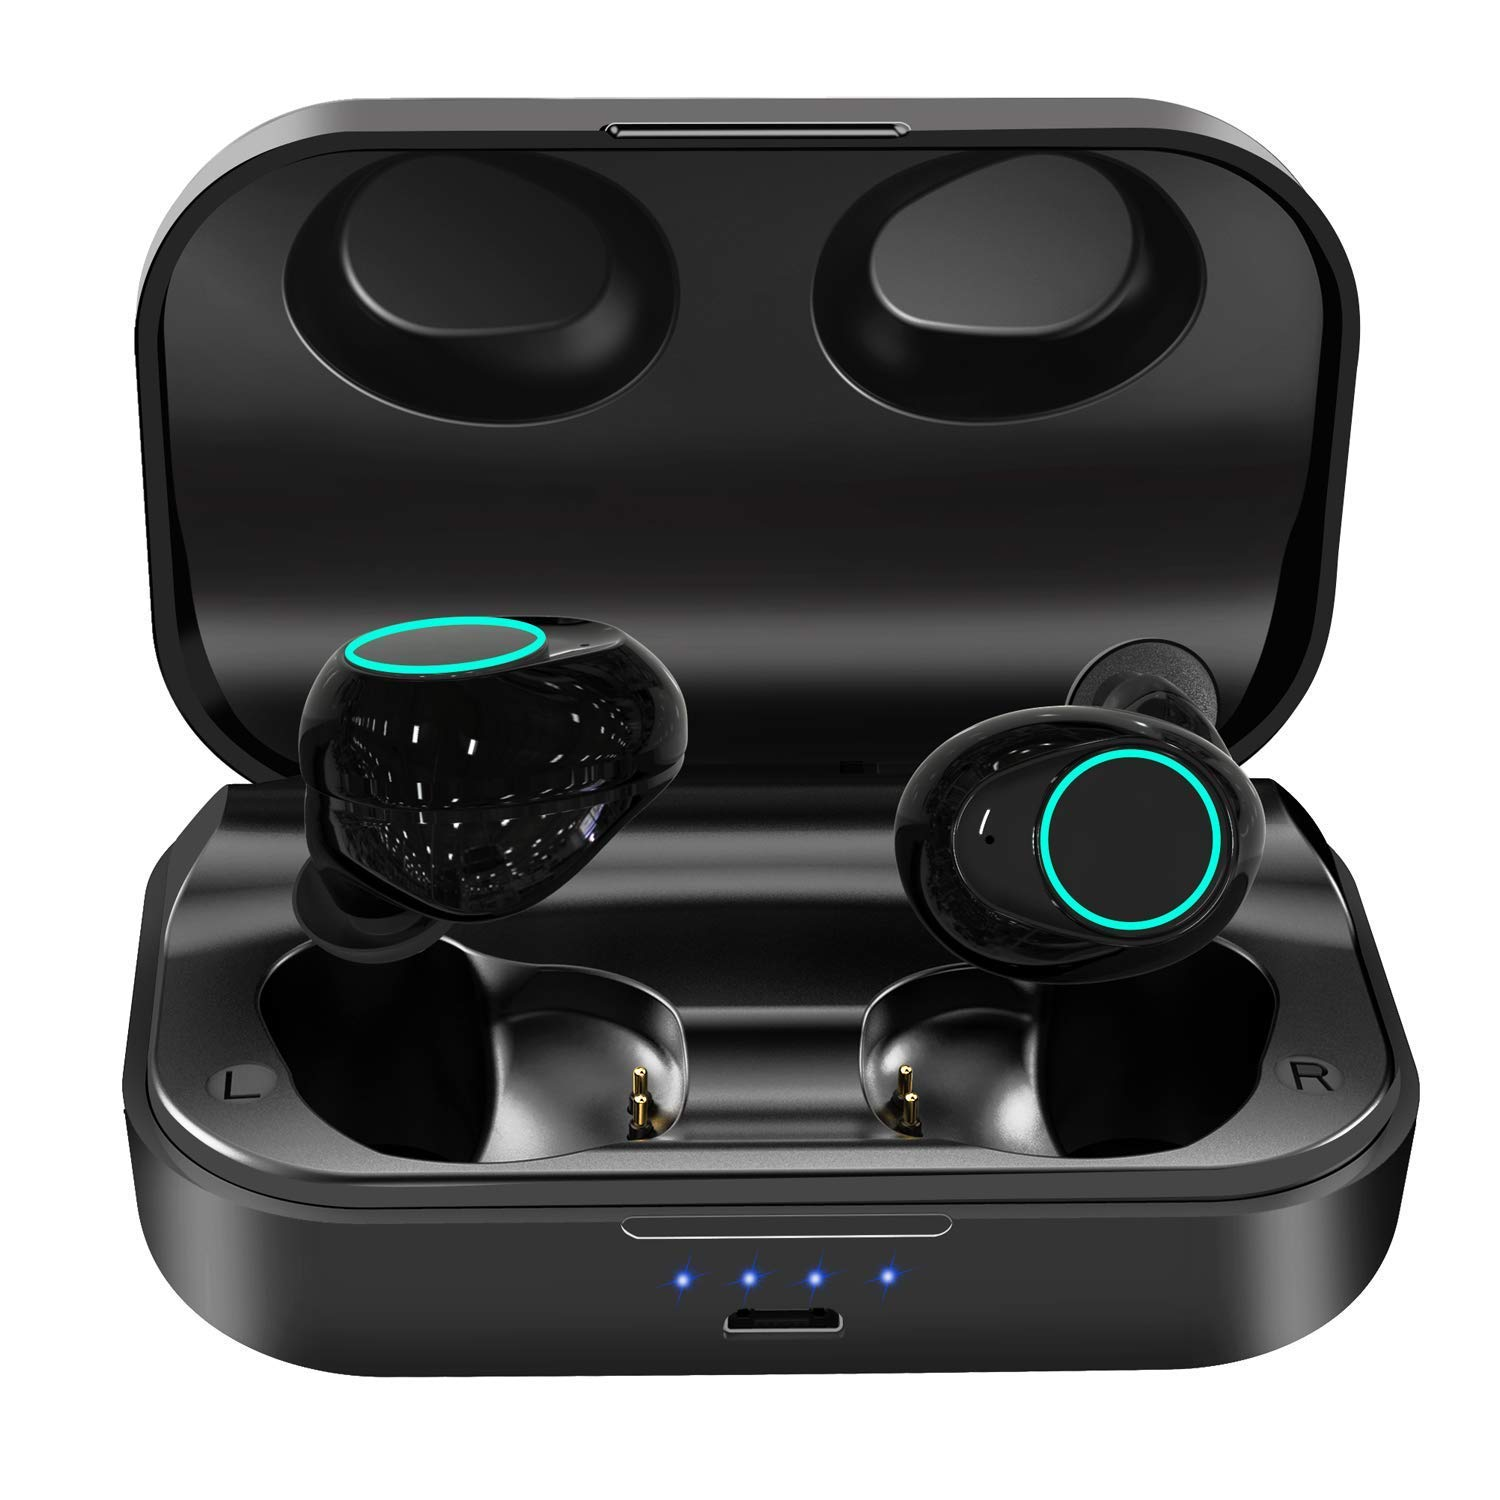 Wireless Earbuds, Bluetooth Headphones 5.0 with 150Hs Playtime, Lightweight Headsets Deep Bass 3D Stereo Sound Bluetooth Earbuds, Siri, 3000mAh Charging Case, IPX6 Waterproof